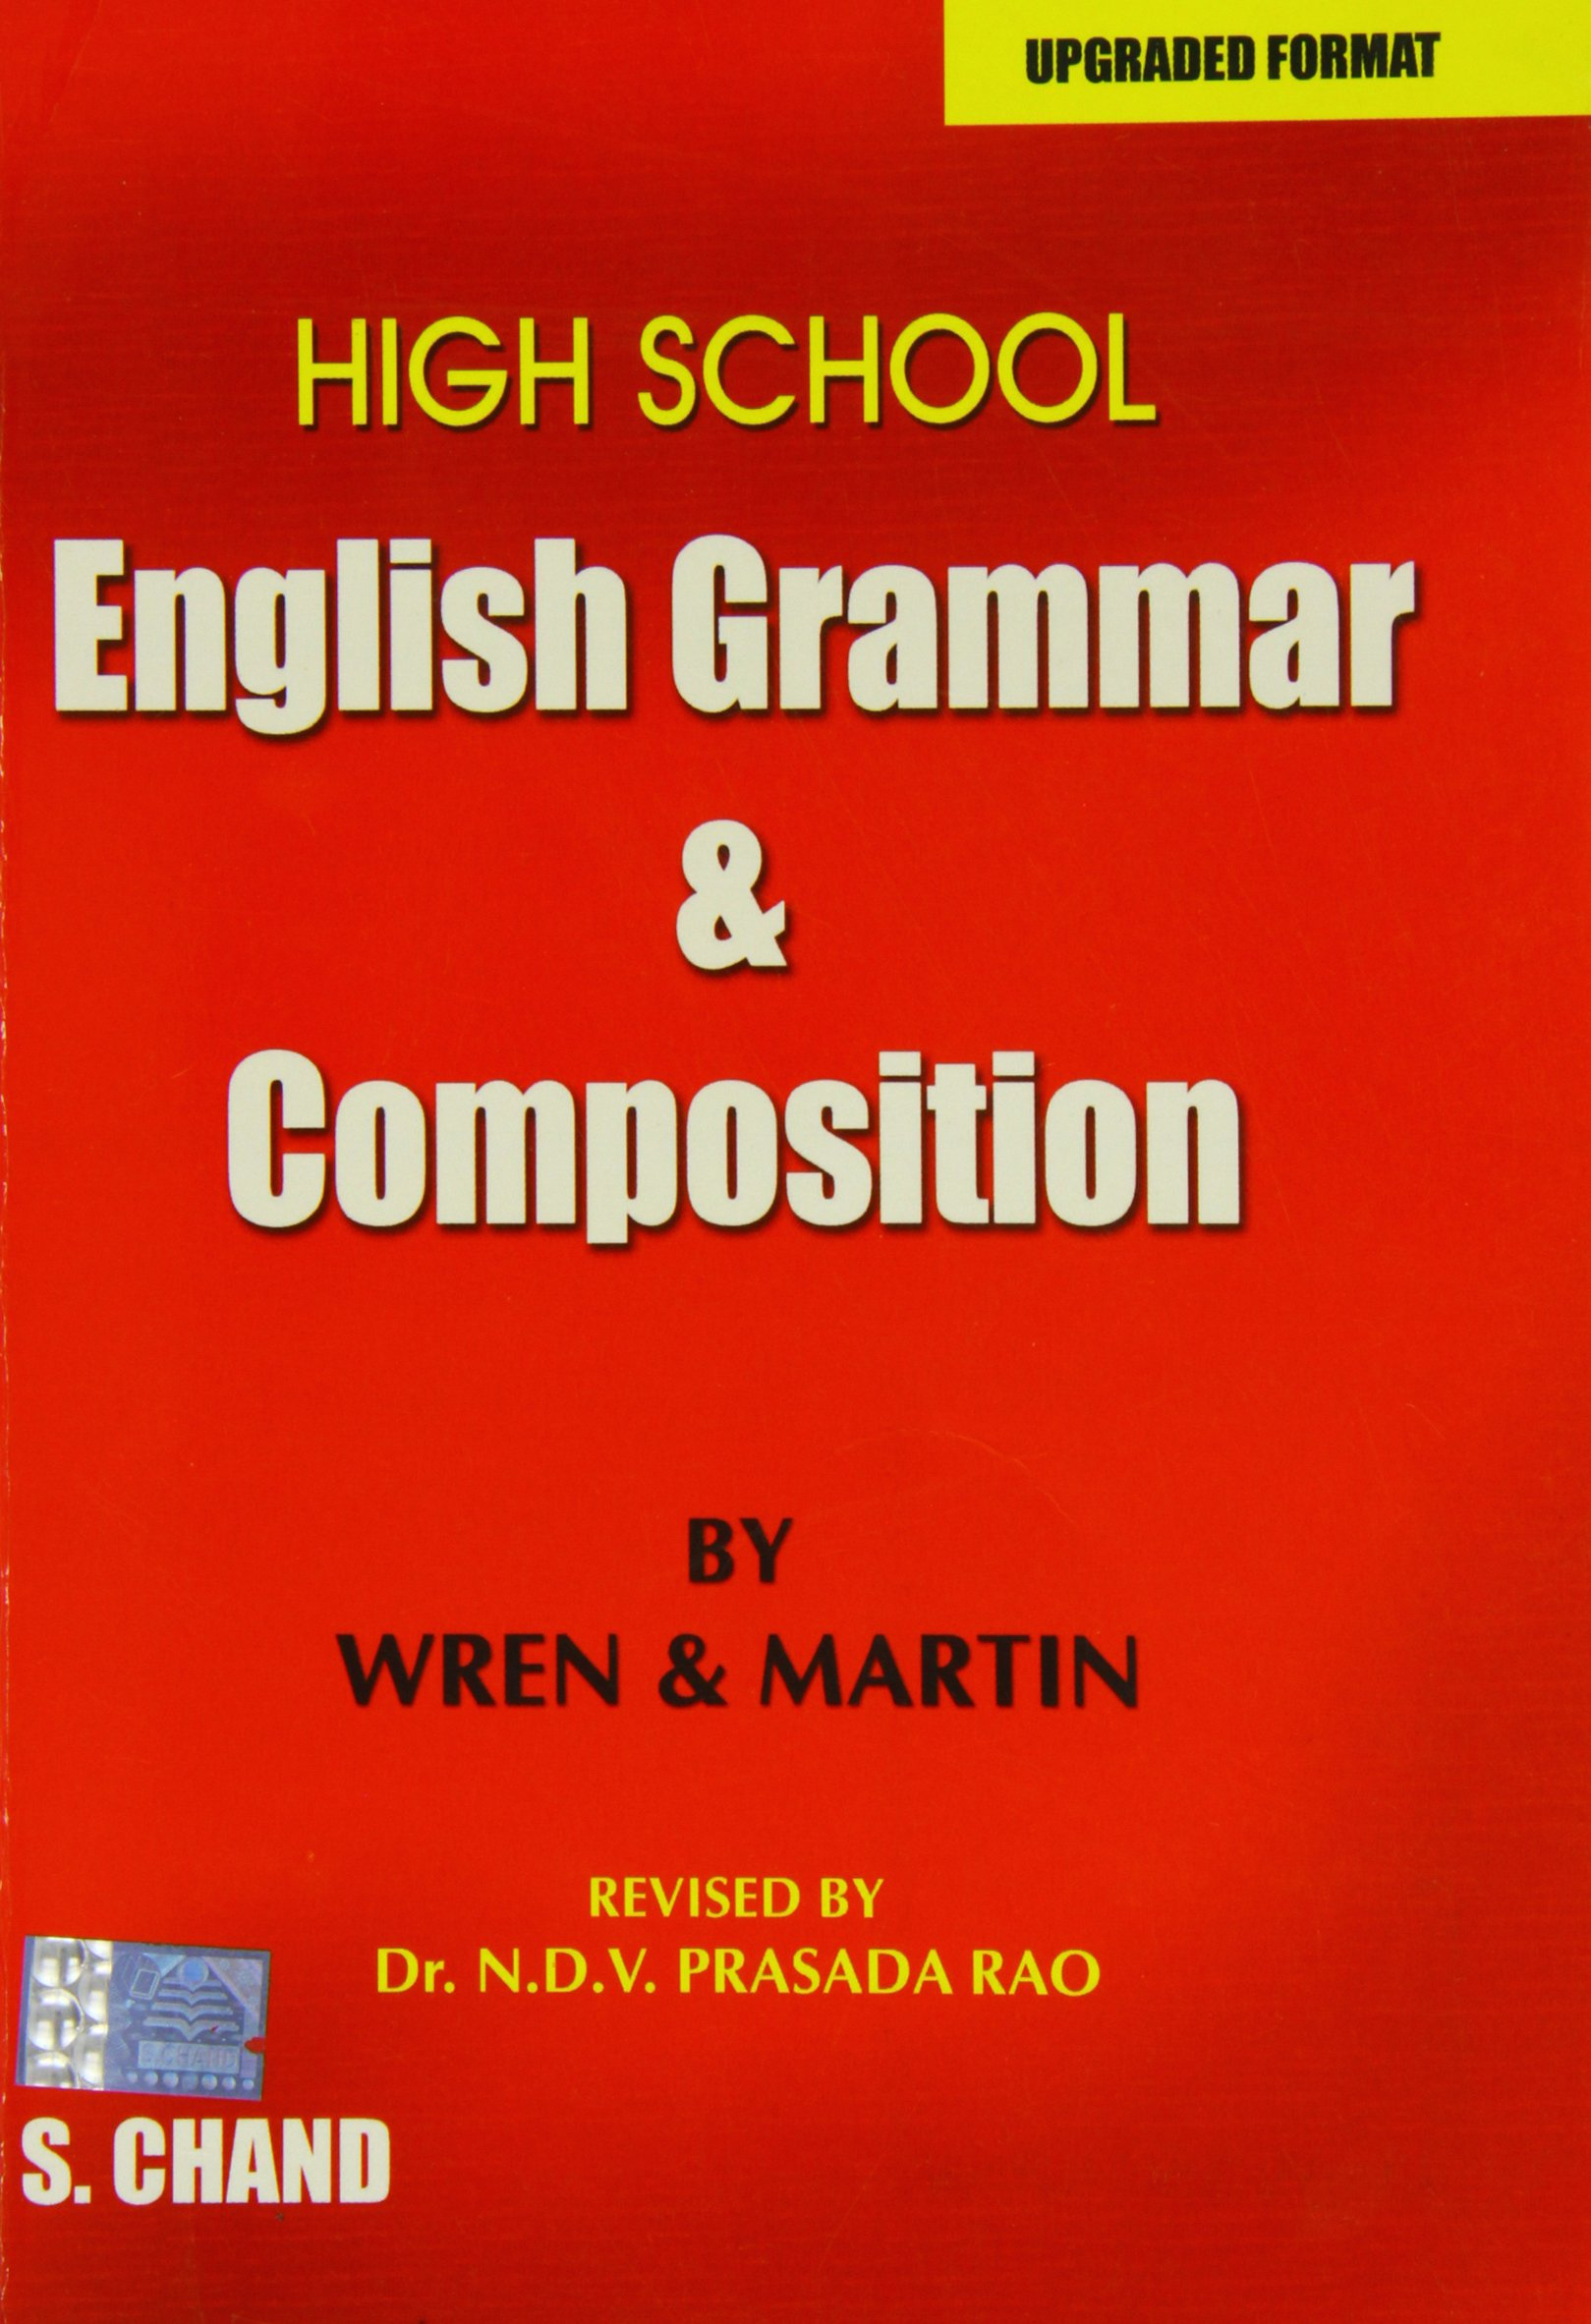 Buy high school english grammar and composition old edition book buy high school english grammar and composition old edition book online at low prices in india high school english grammar and composition old edition fandeluxe